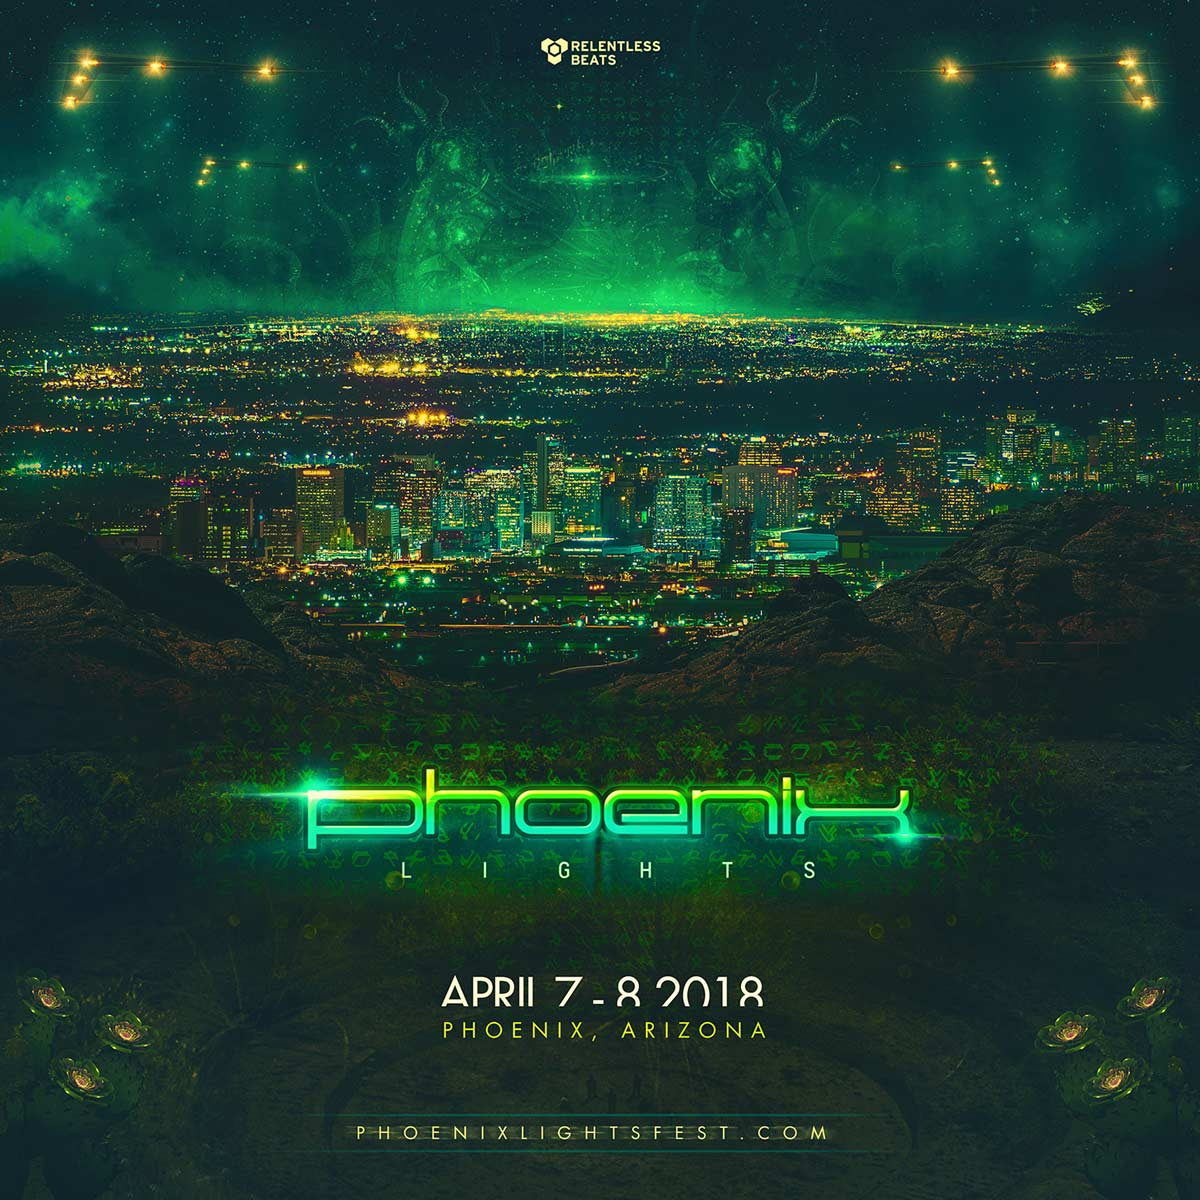 Phoenix Lights Festival 2018 Lineup - A Musical Abduction of Extraterrestrial Proportions Phoenix Lights 2018